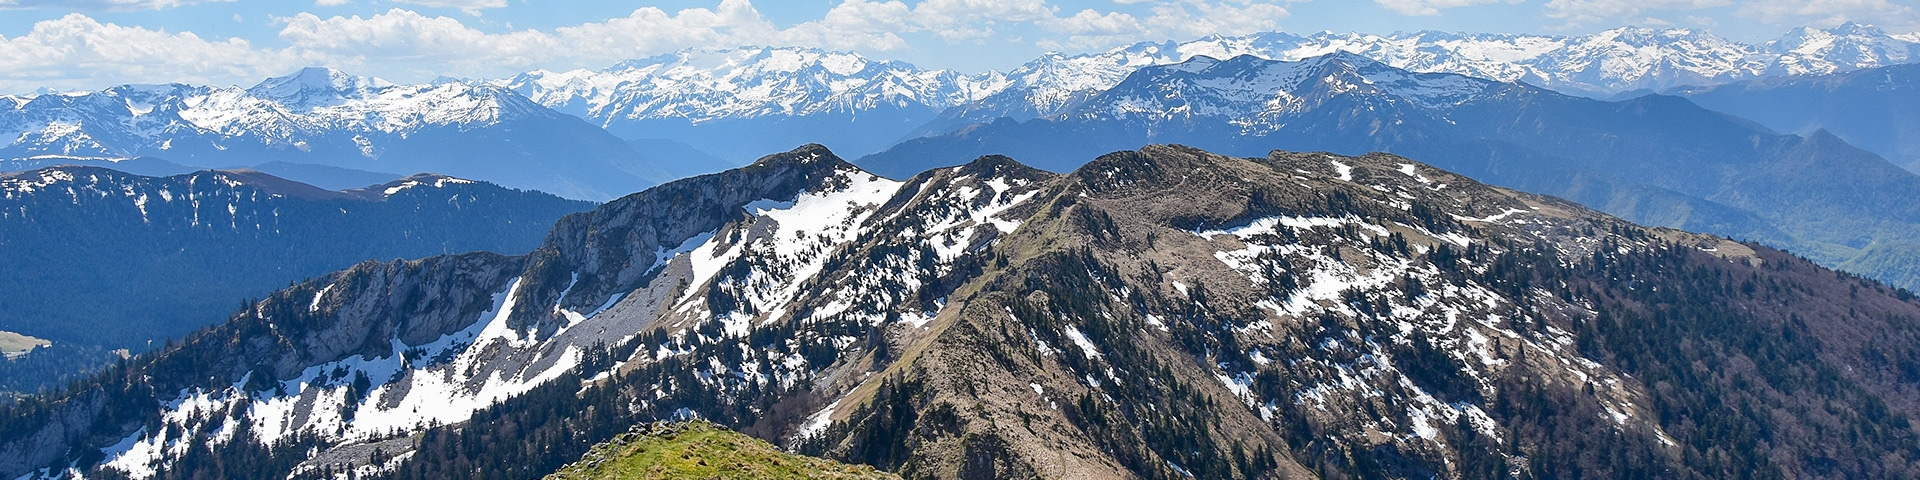 Panoramic views from the Cagire Loop hike in French Pyrenees